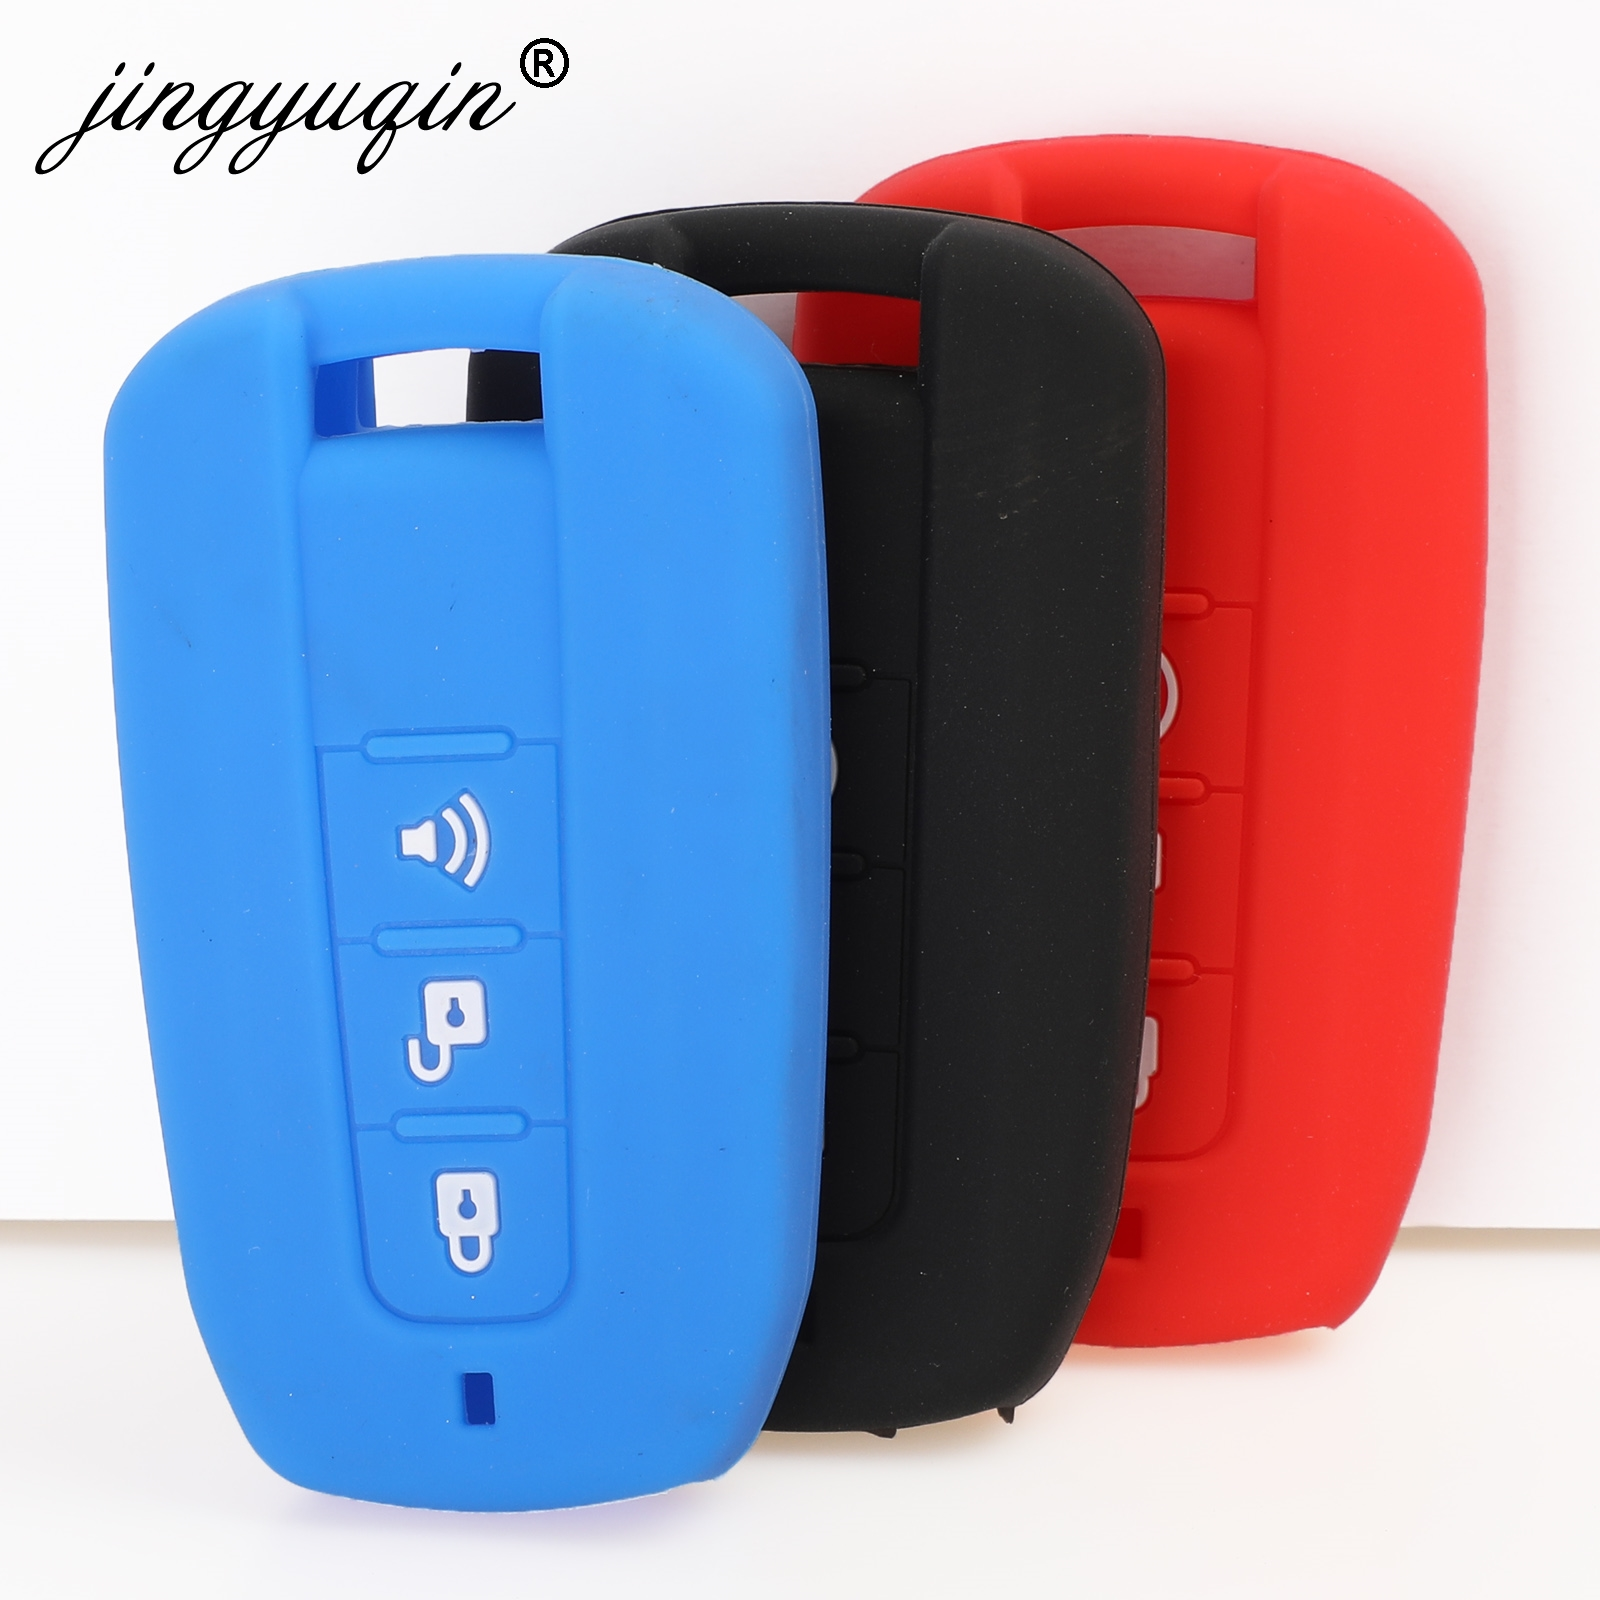 Image 2 - jingyuqin Silicone Car Key Cover FOB for Ssangyong Tivolan Actyon Kyron Korando Rodius Remote Key Case Car styling 3/4 Button-in Key Case for Car from Automobiles & Motorcycles